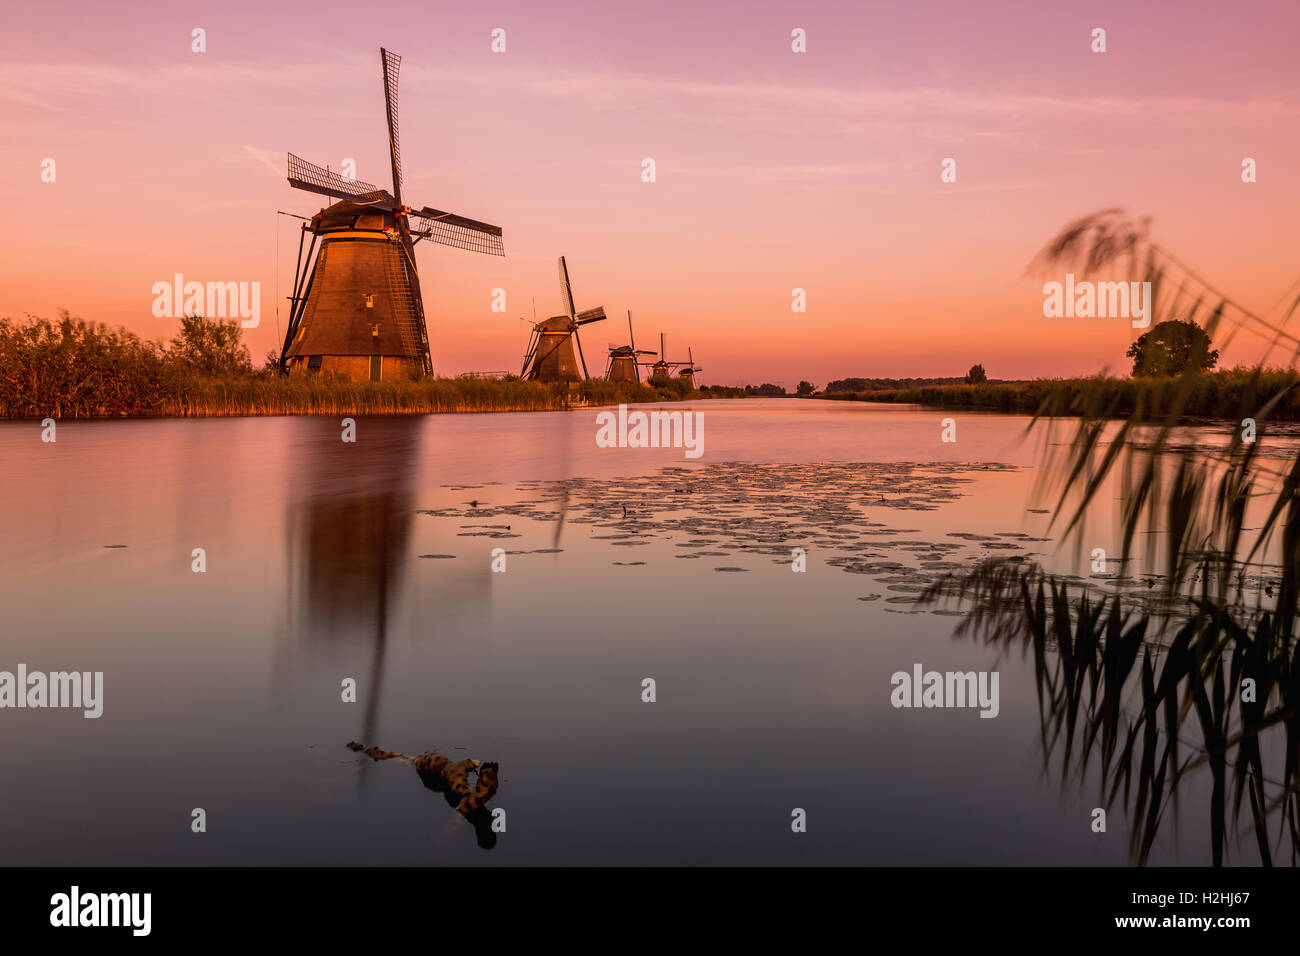 Windmills of Kinderdijk near Rotterdam in Netherlands. Colorful spring scene in the famous Kinderdijk canals with - Stock Image